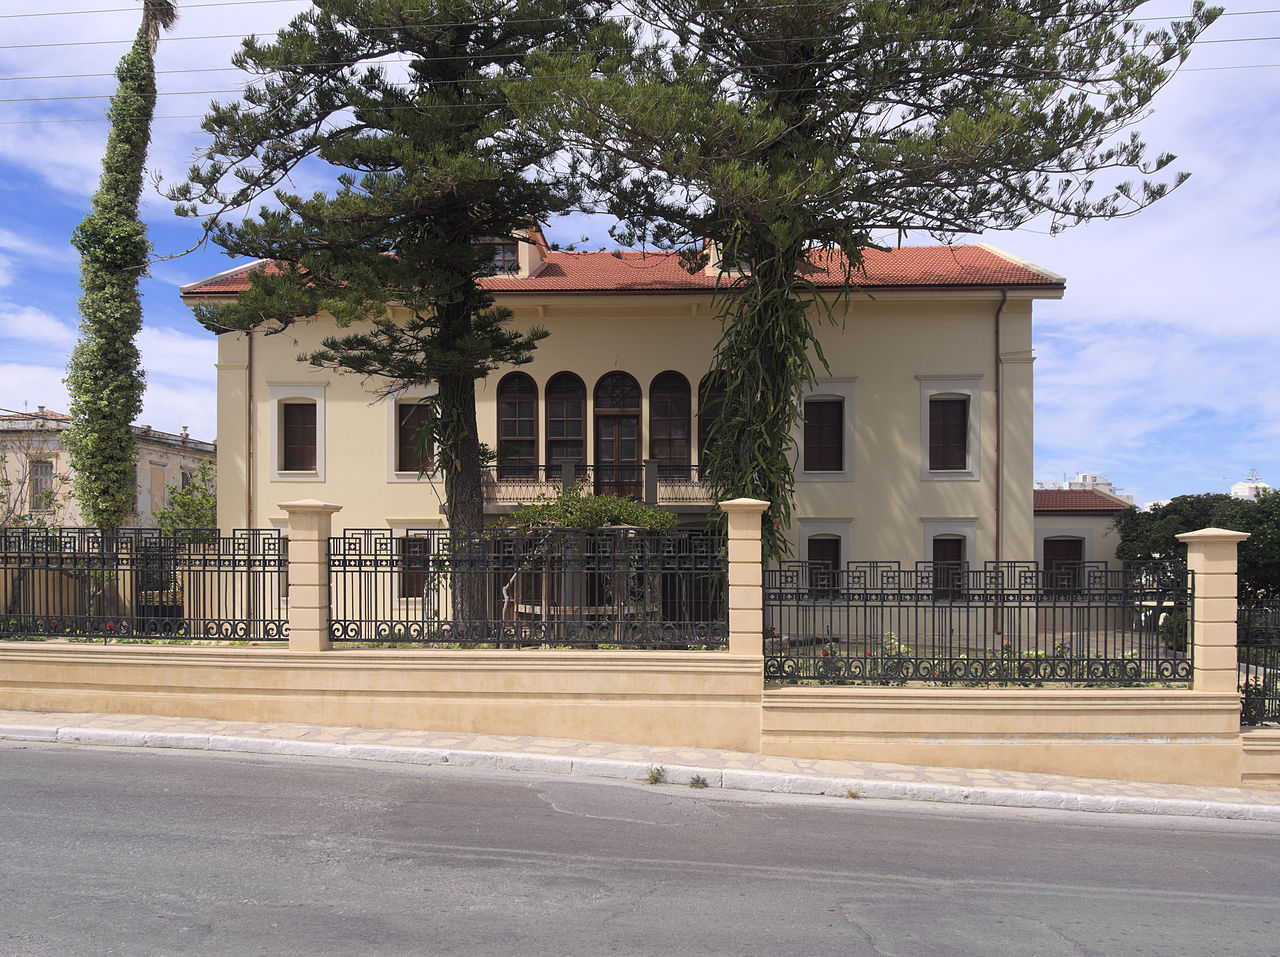 house of Venizelos